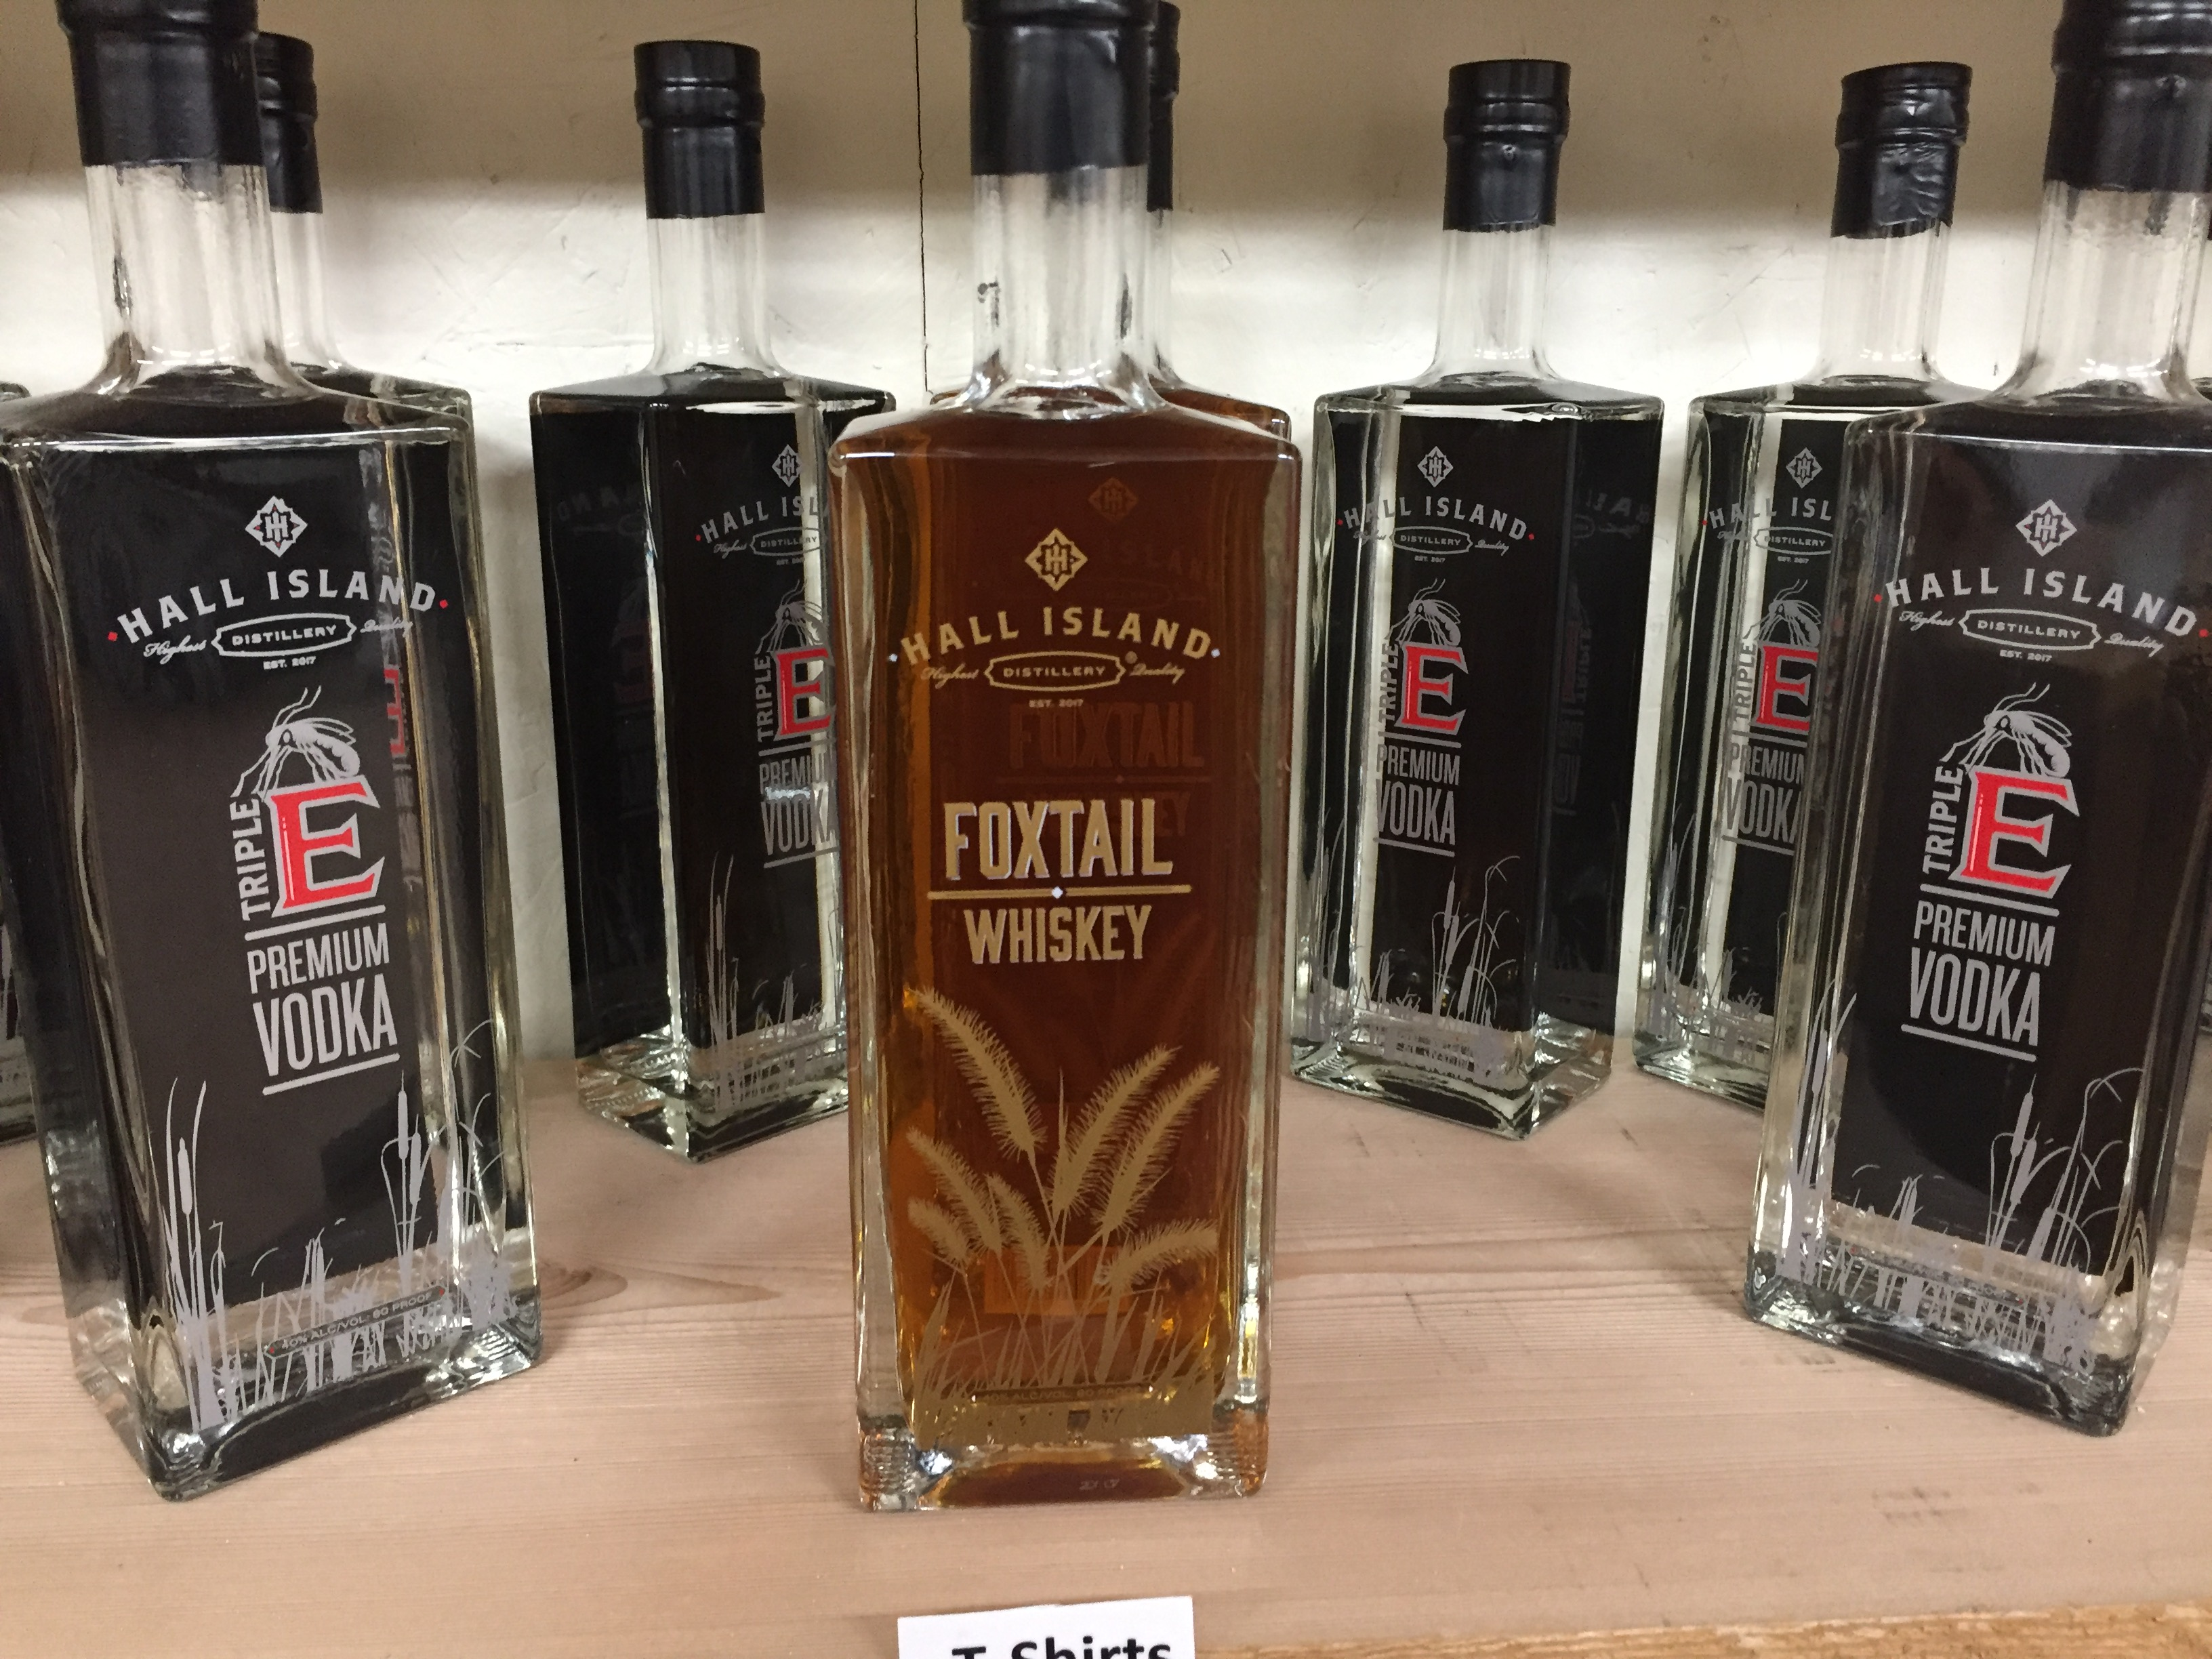 Hall Island Distillery: Whiskey and vodka from the heart of a CNY swamp